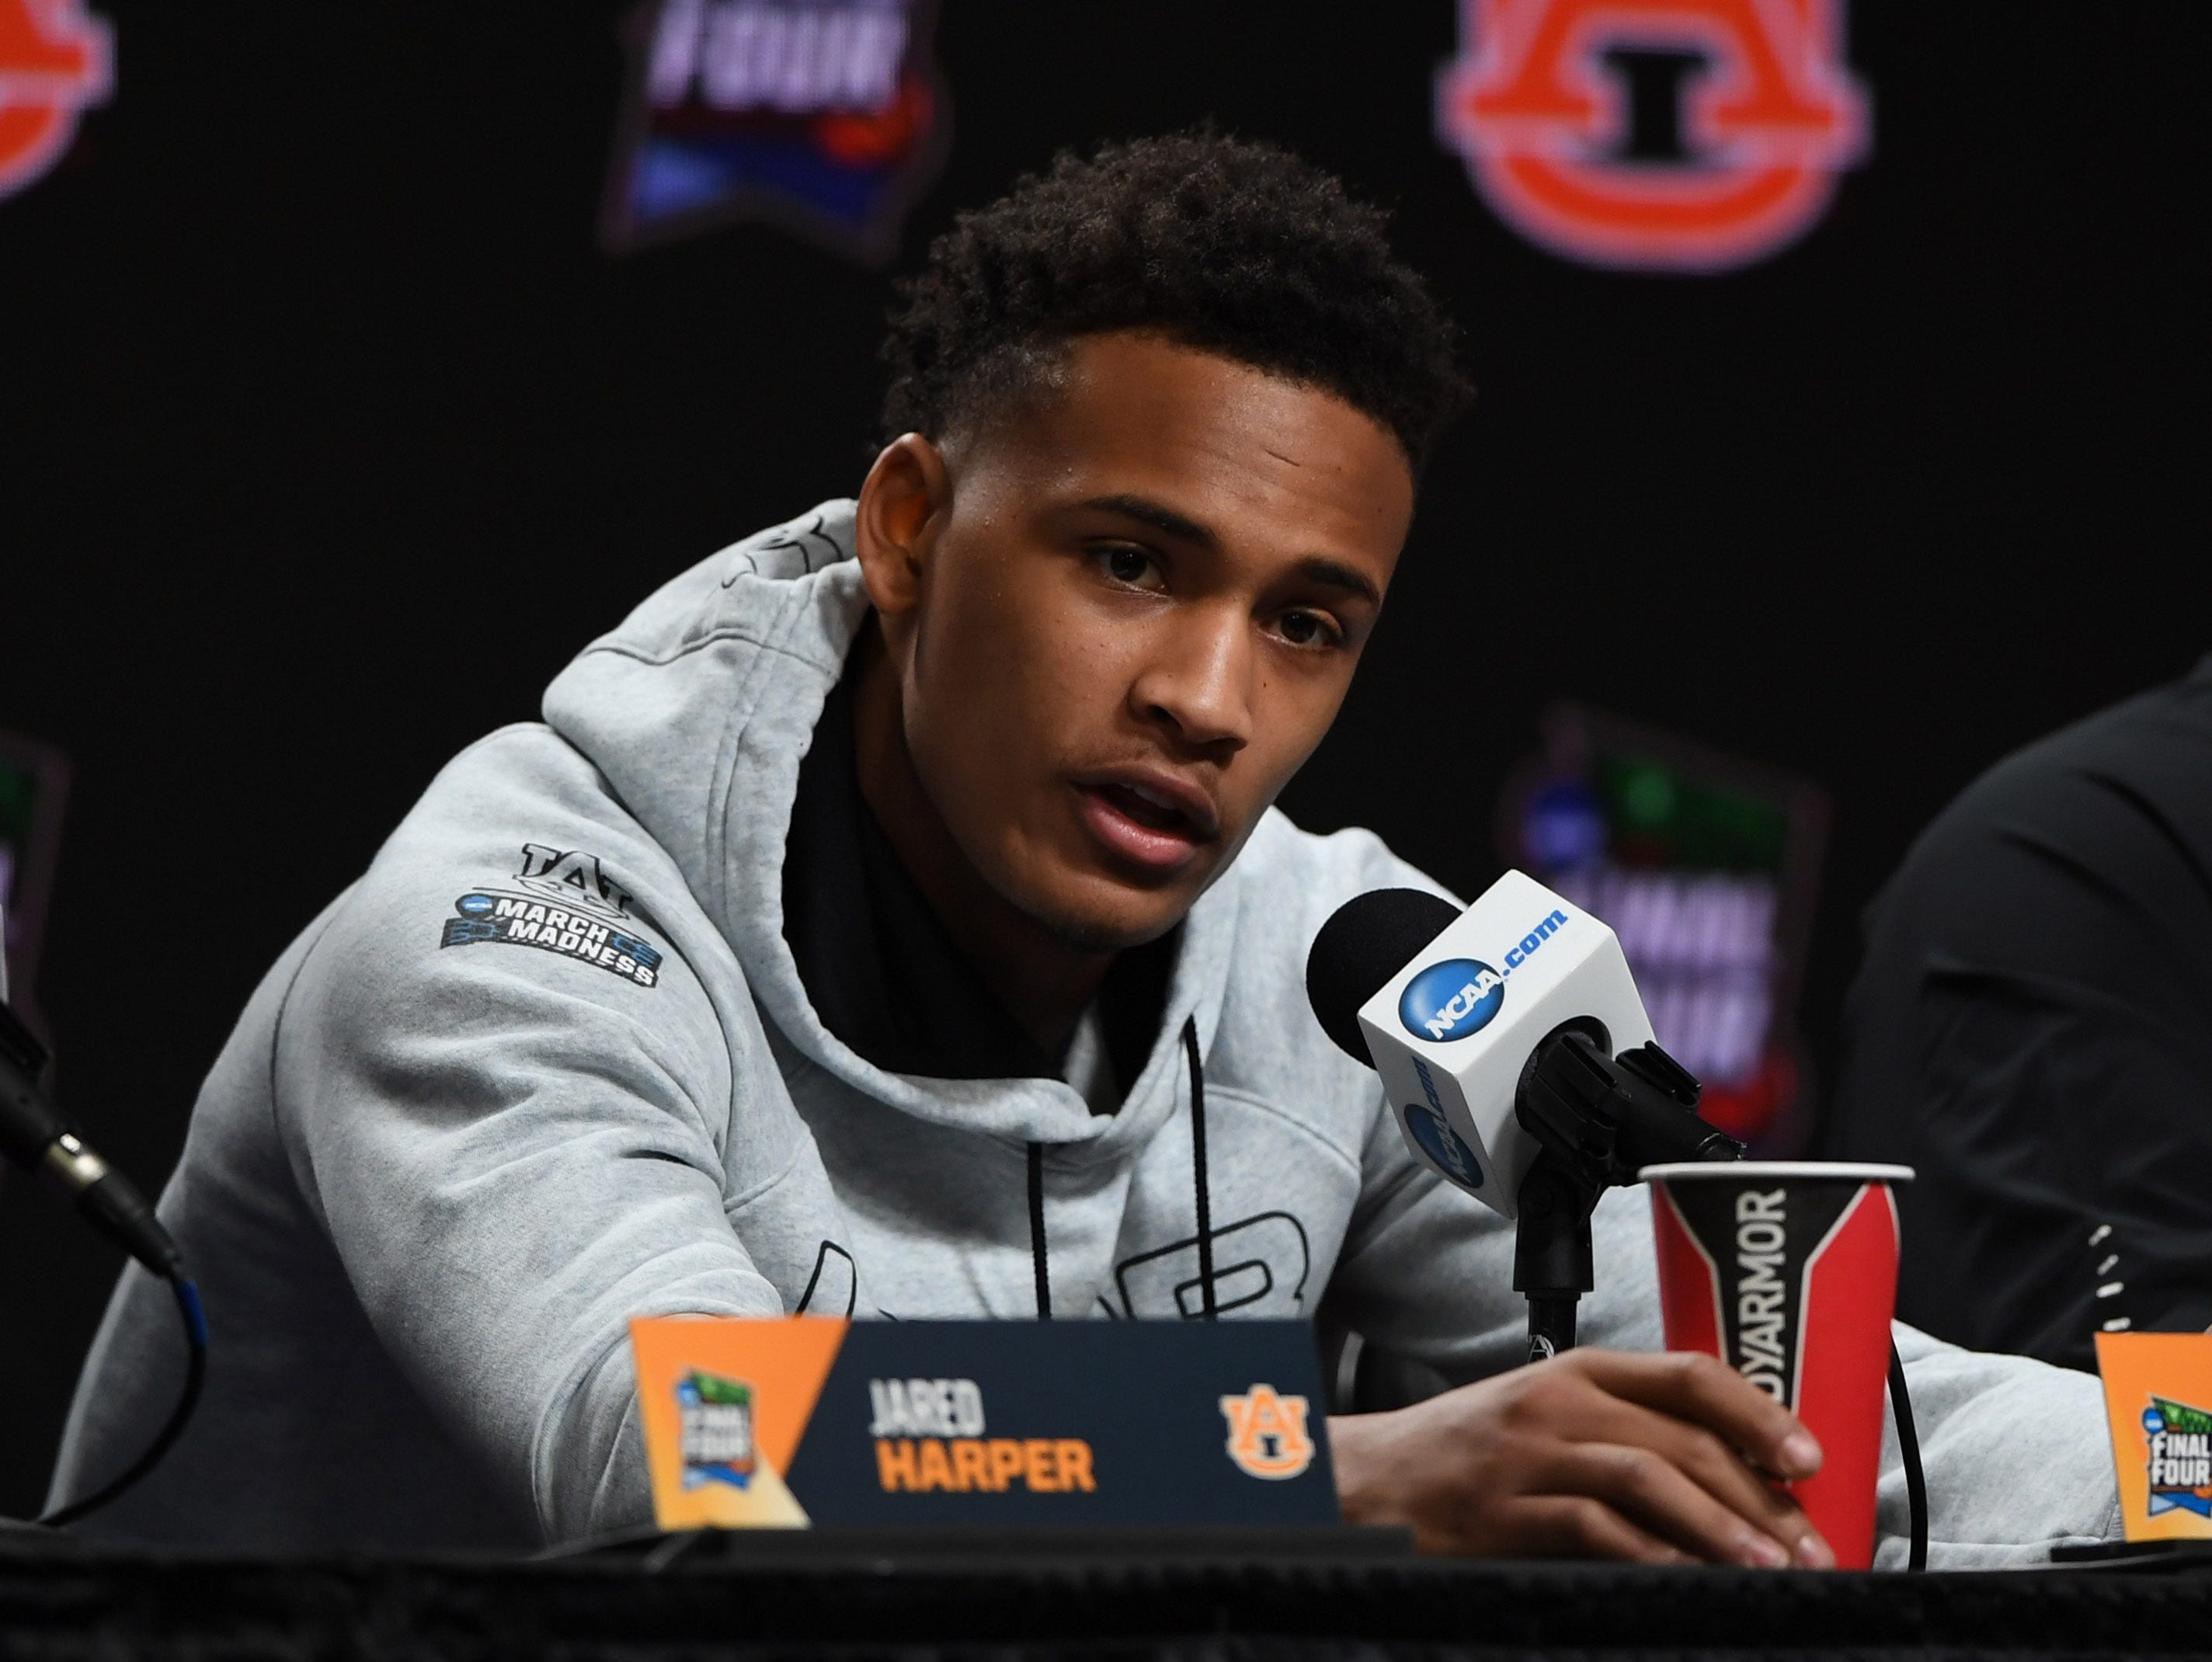 Apr 5, 2019; Minneapolis, MN, USA; Auburn Tigers guard Bryce Brown (2) during a press conference before practice for the 2019 men's Final Four at US Bank Stadium. Mandatory Credit: Shanna Lockwood-USA TODAY Sports